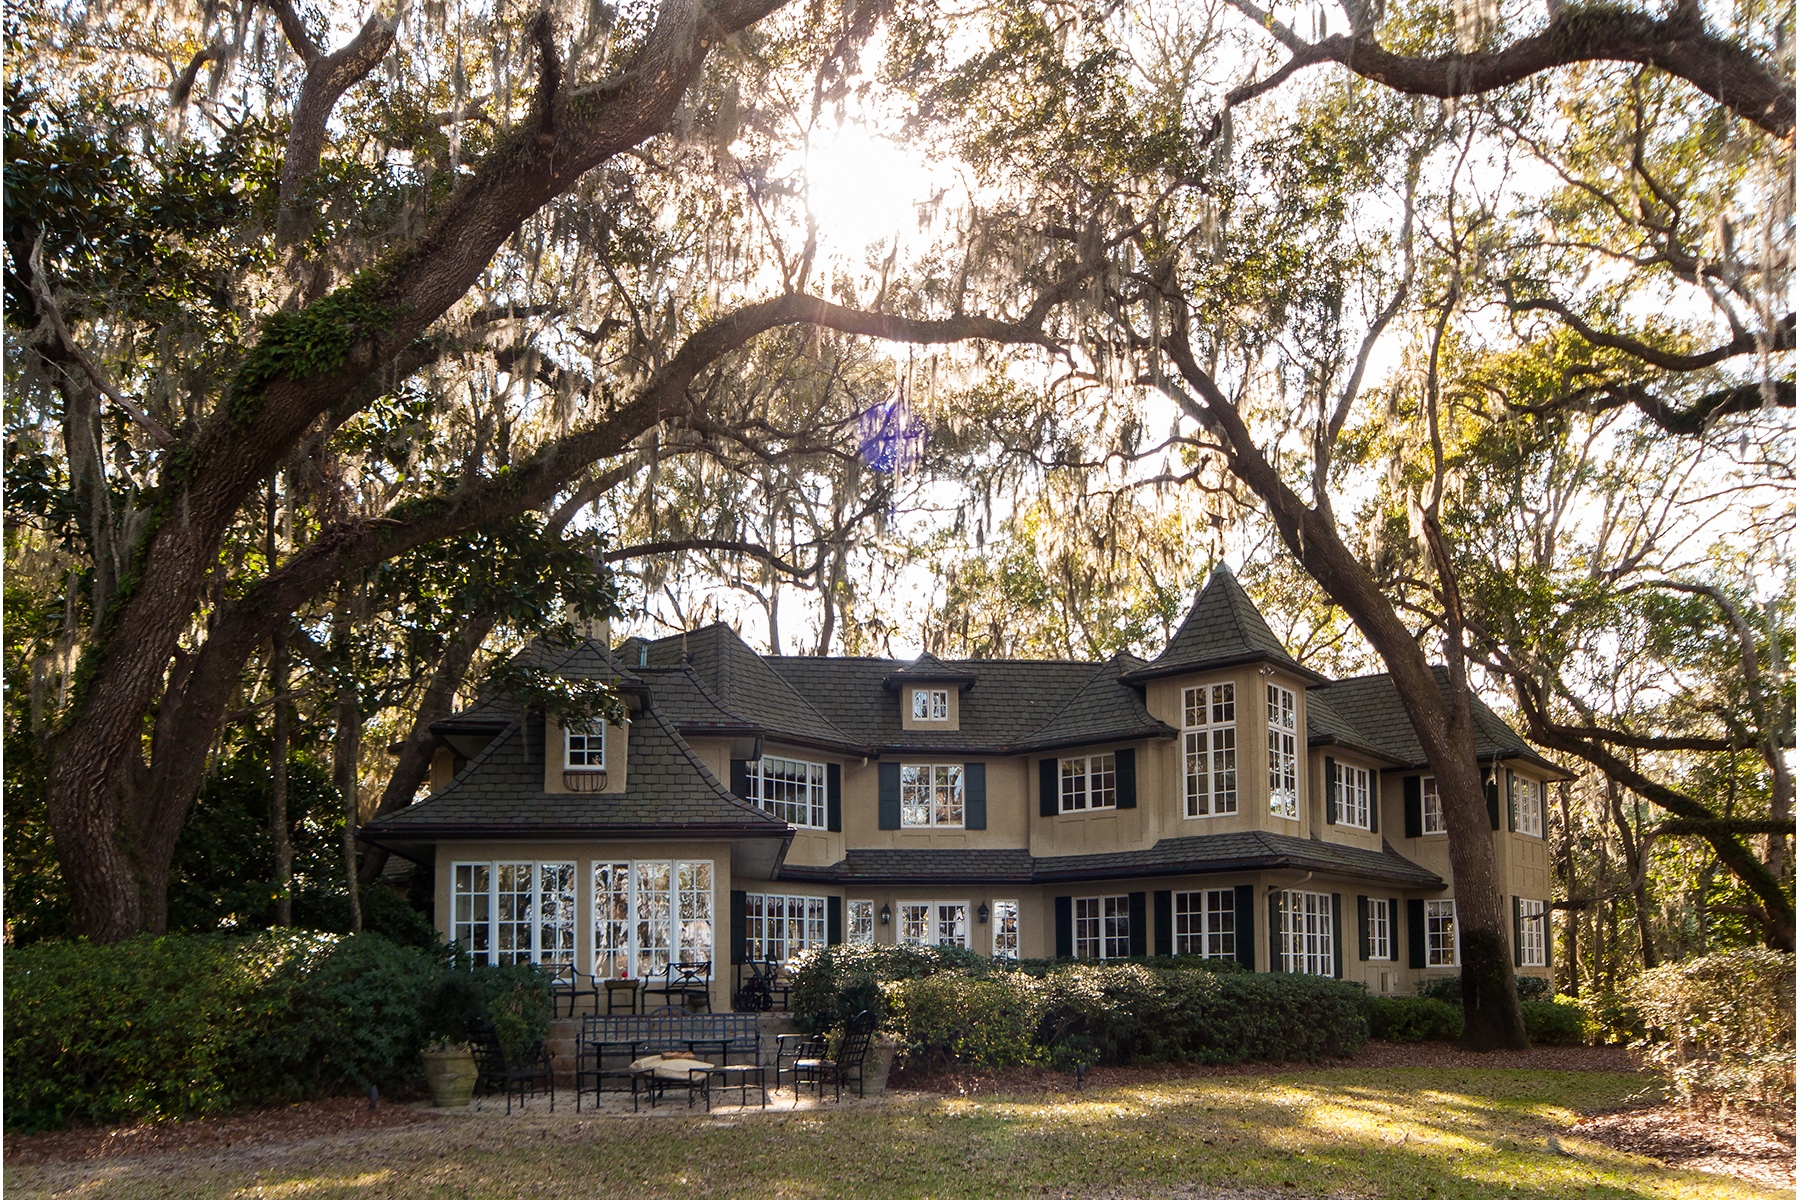 Single Family Home for Sale at PRIVATE MANOR ON EXPANSIVE FORESTED BAYFRONT PROPERTY 422 Harstvedt Road Santa Rosa Beach, Florida 32459 United States